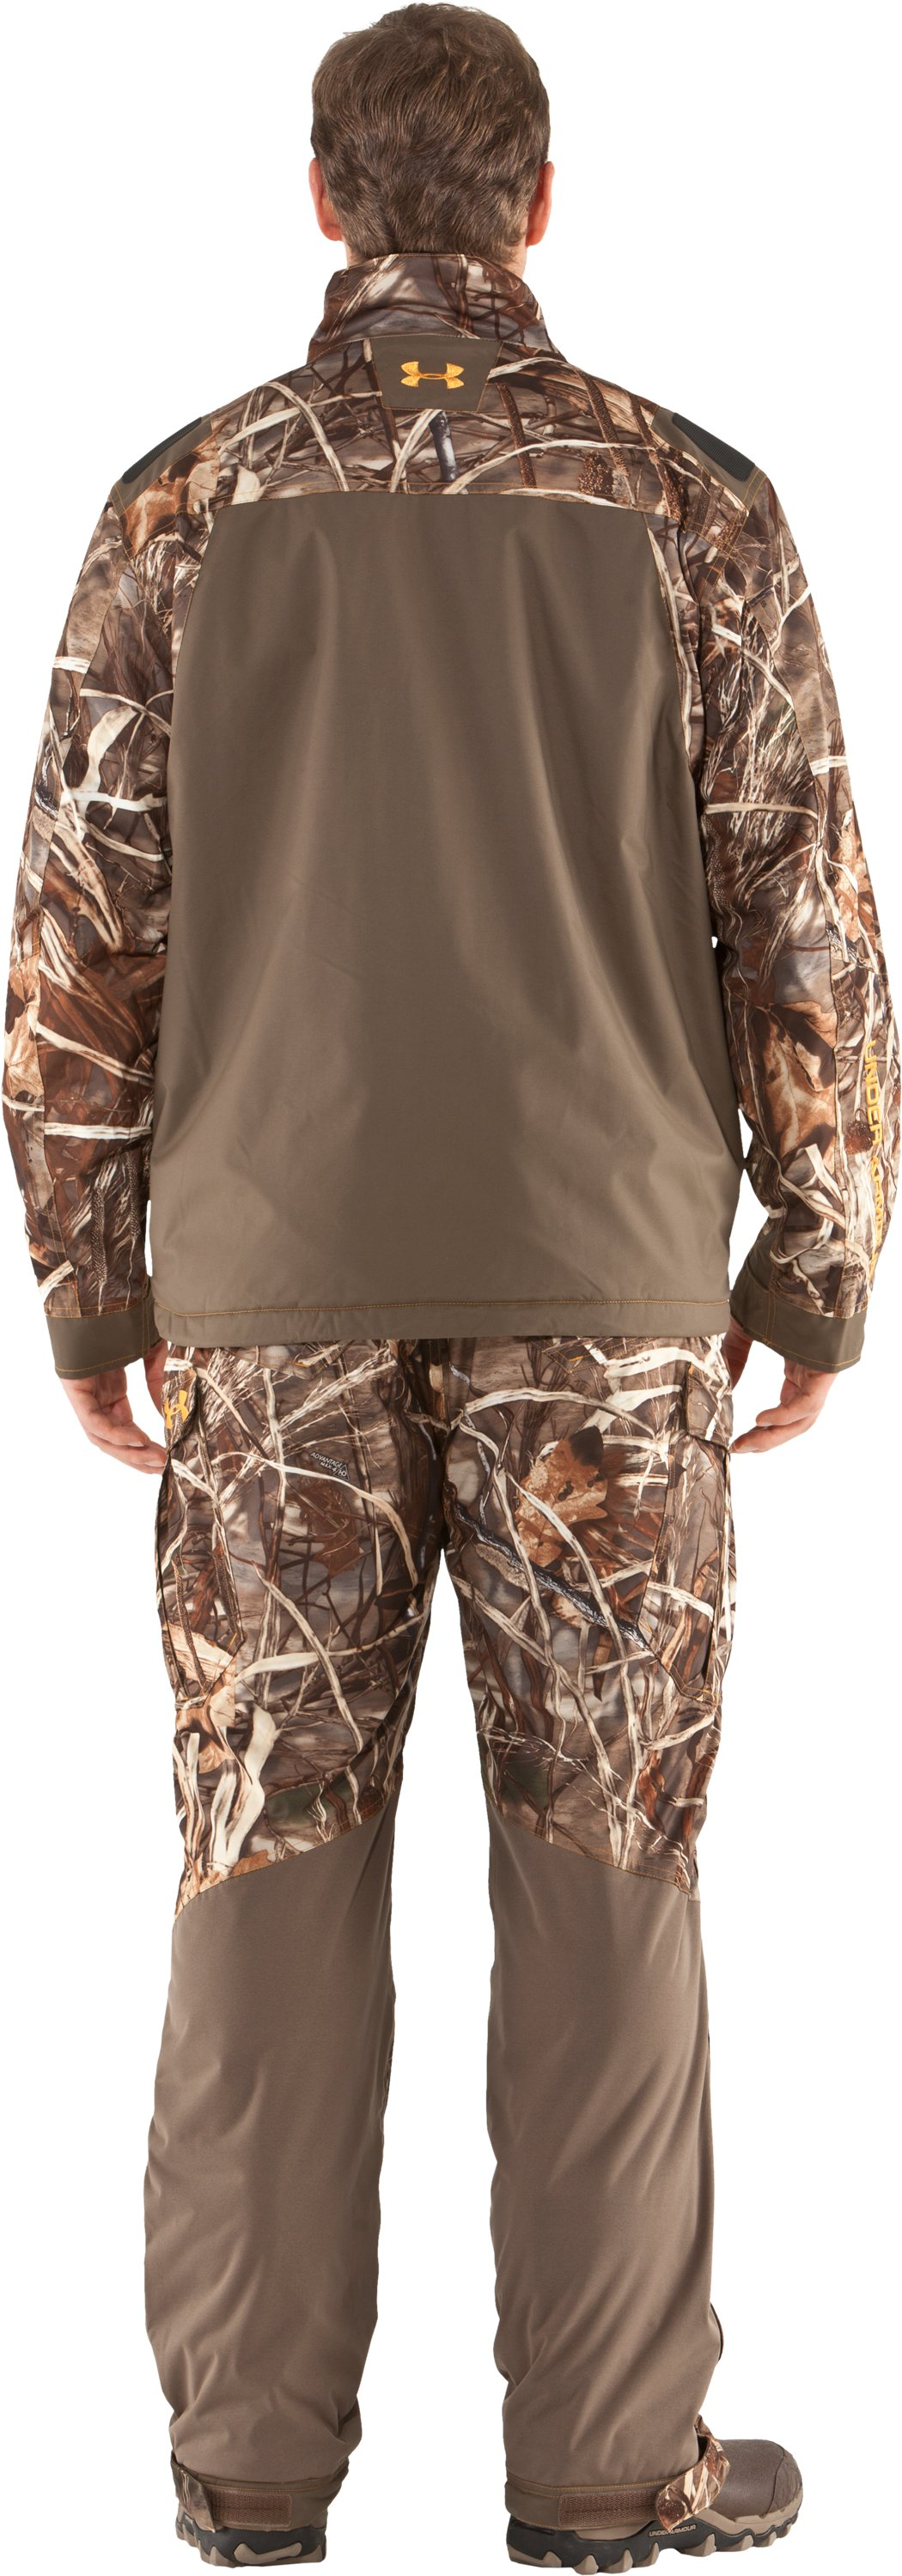 Men's Skysweeper Camo Hunting Jacket, Realtree Max, Back